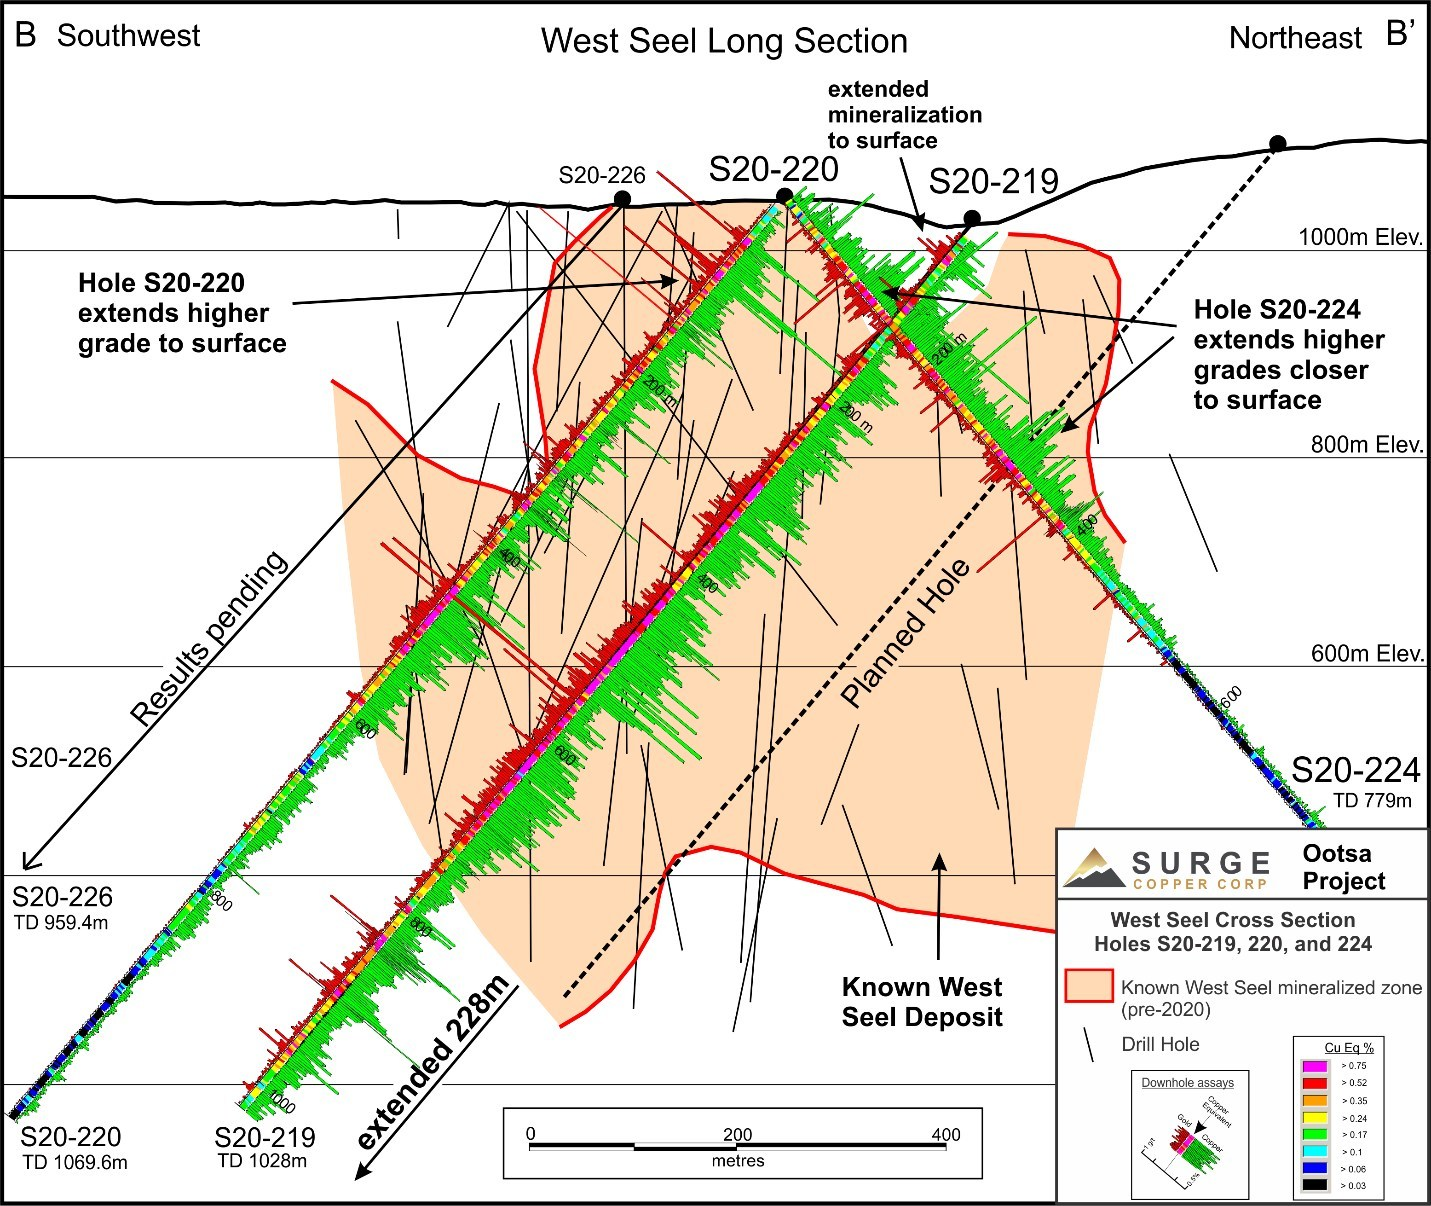 Figure 2. West Seel Long Section showing results for Holes S20-220, S20-224, and the previously released S20-219 (see Surge's December 14, 2020 news release). (CNW Group/Surge Copper Corp.)